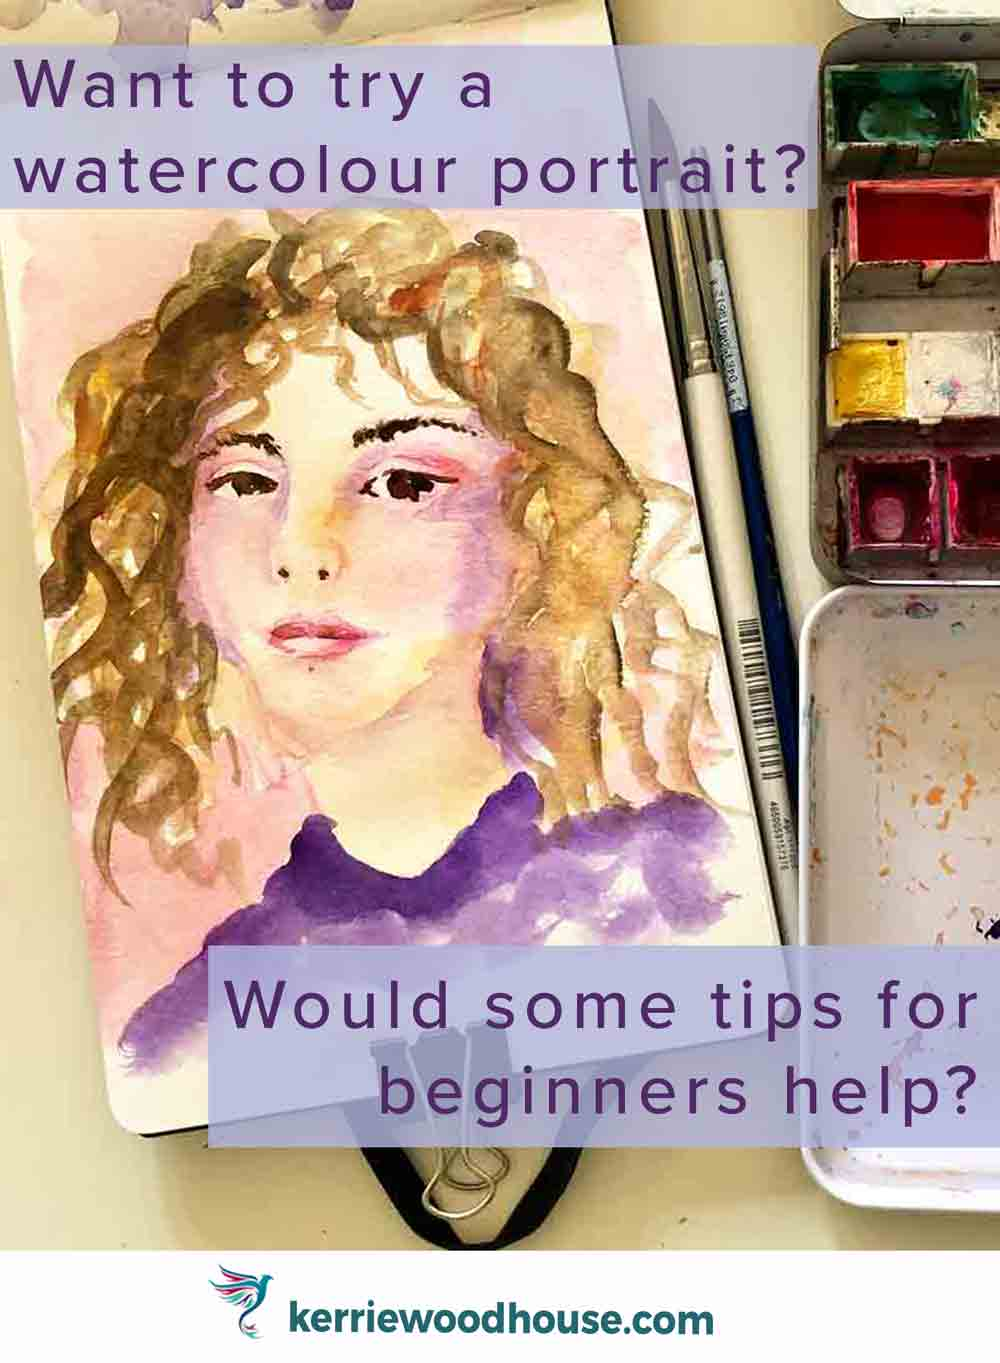 want-to-try-a-watercolour-portrait-would-some-beginners-tips-help-kw.jpg